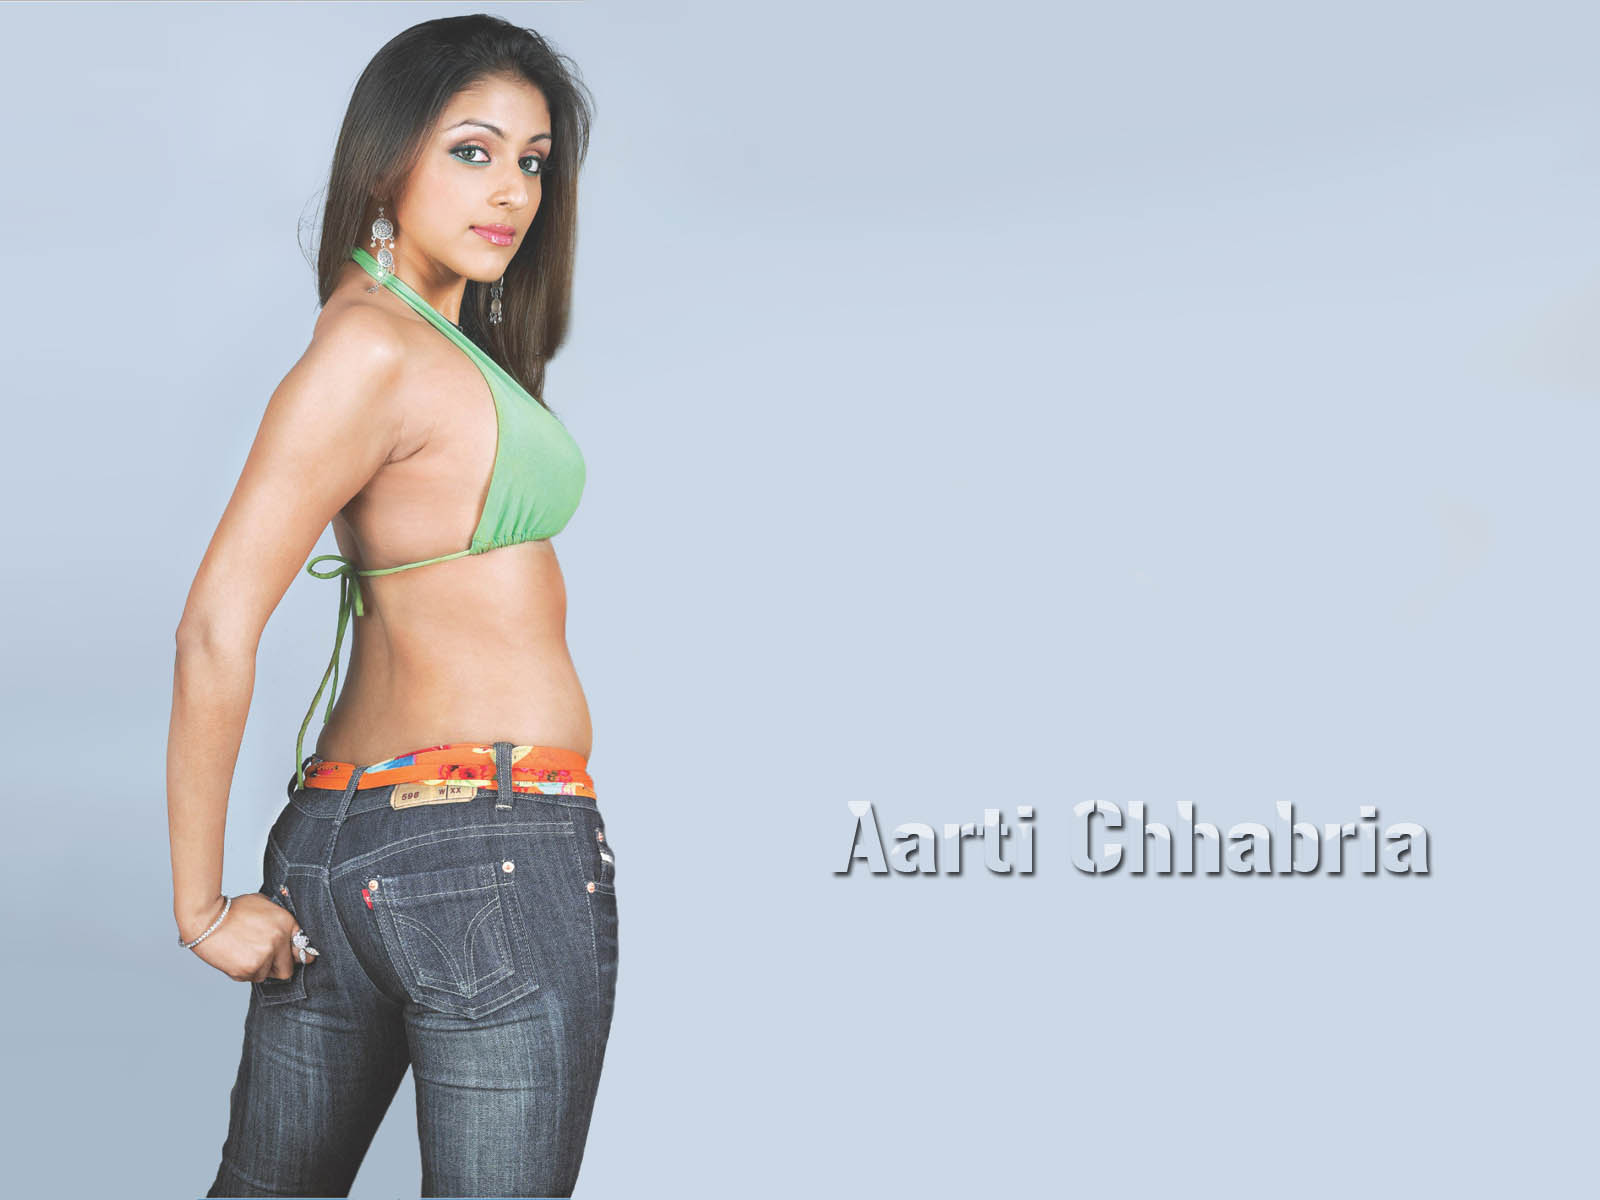 Aarti chabria ghatu prema very hot song - 1 1